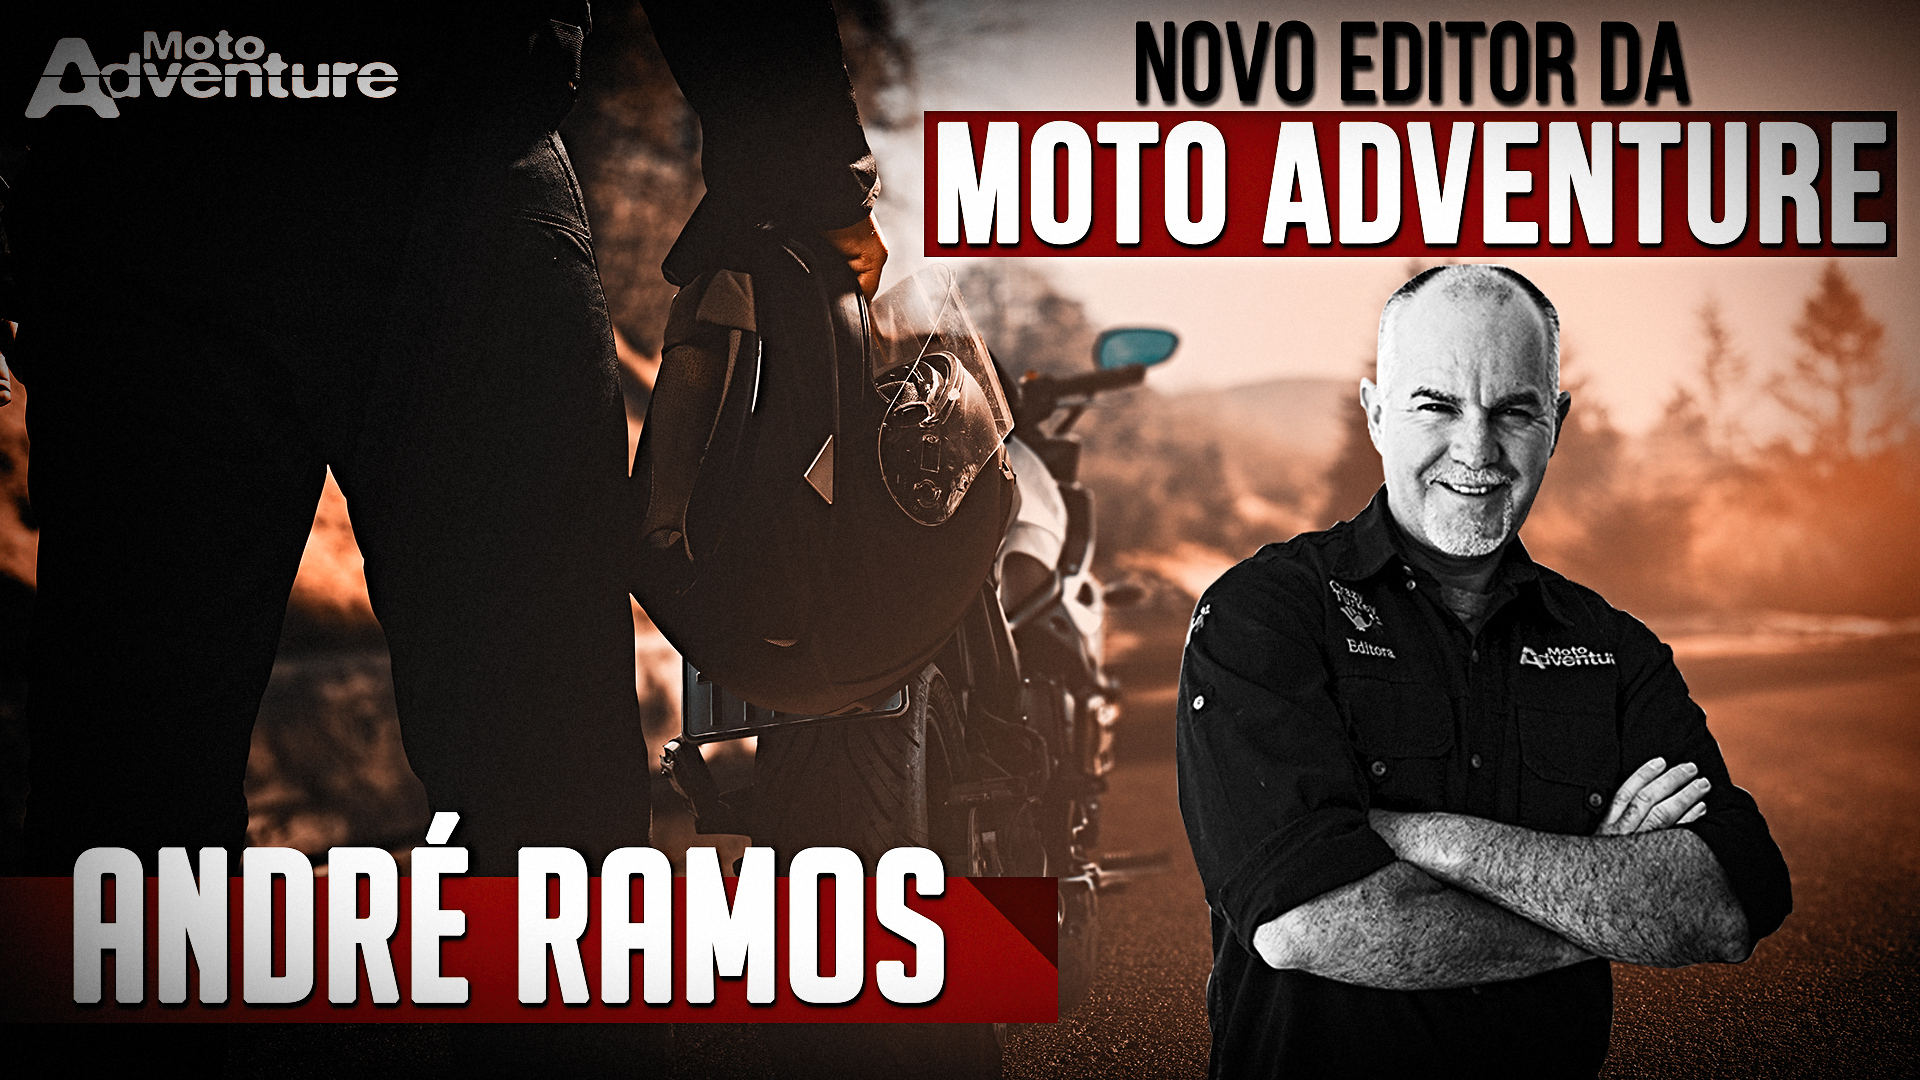 moto-adventure-revista-andré-ramos-assume-como-novo-editor-chefe